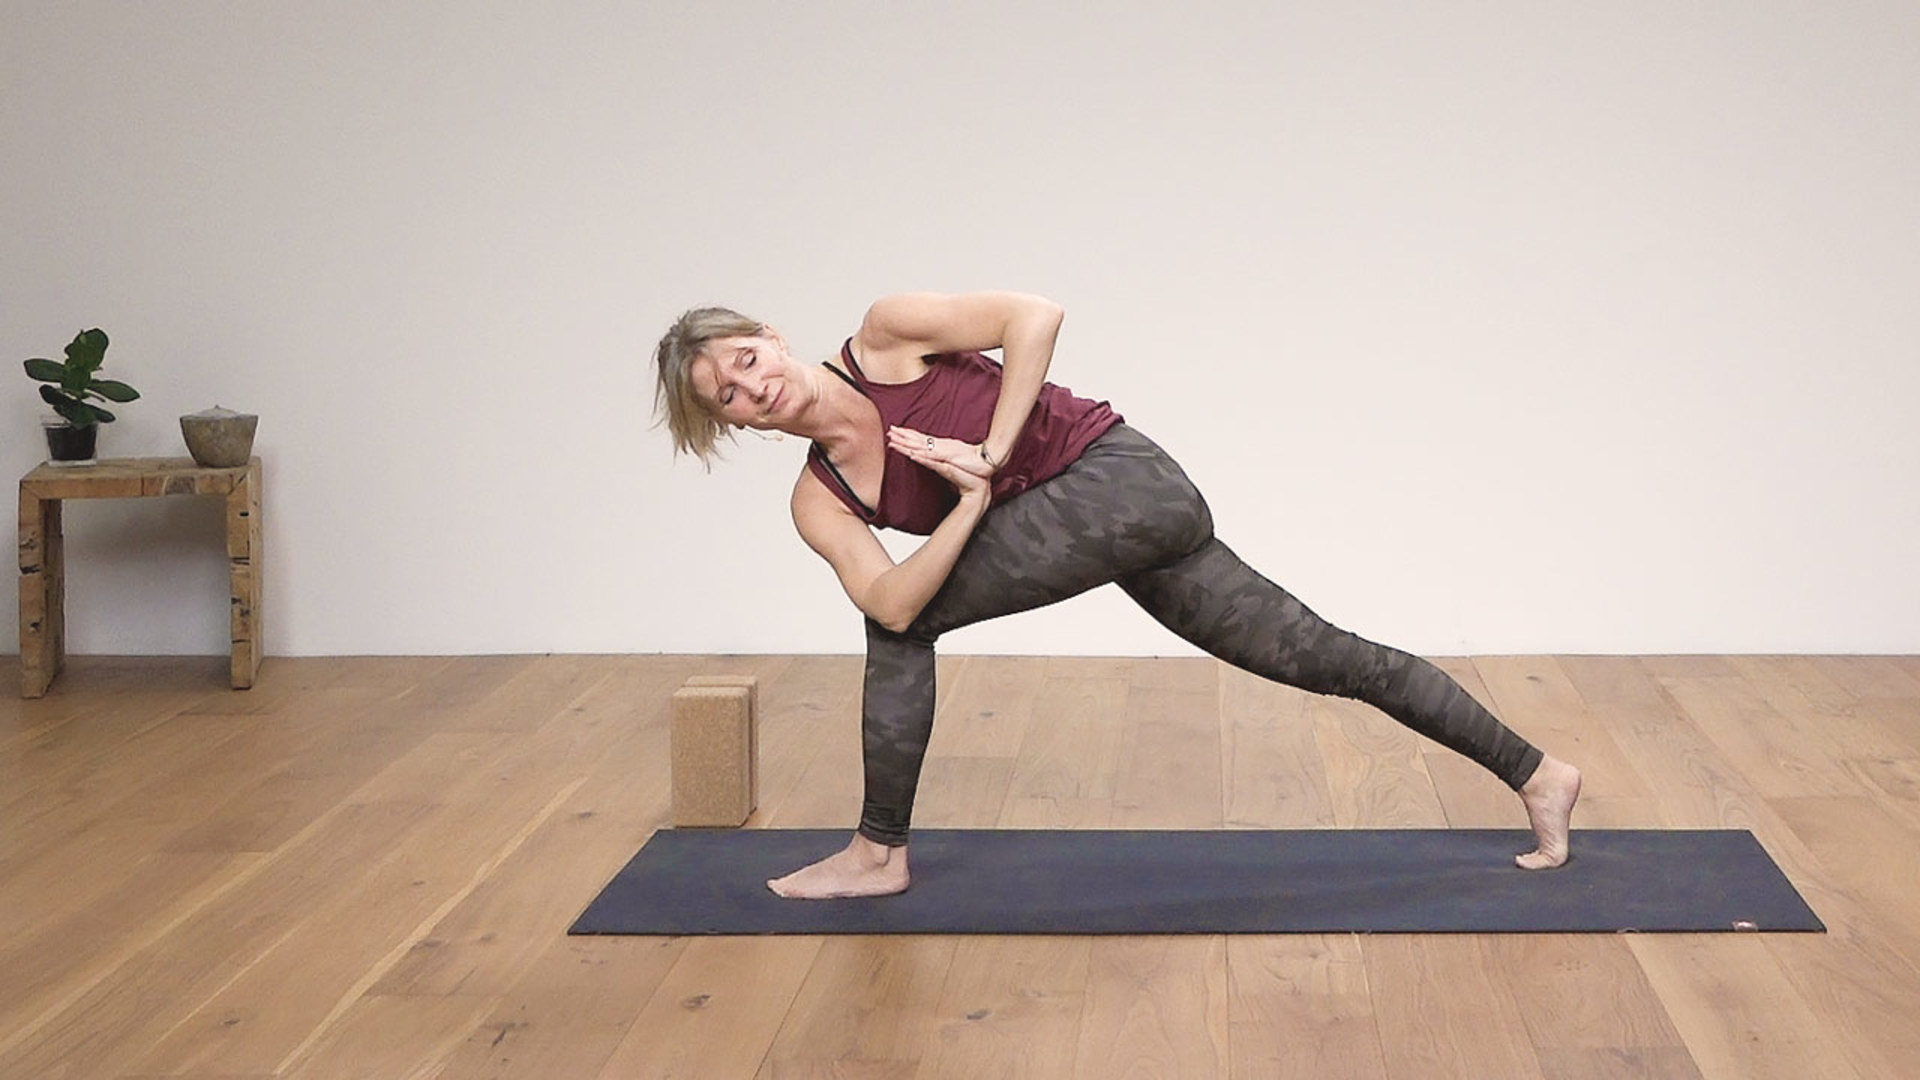 From Hatha to Vinyasa - slow is the new strong